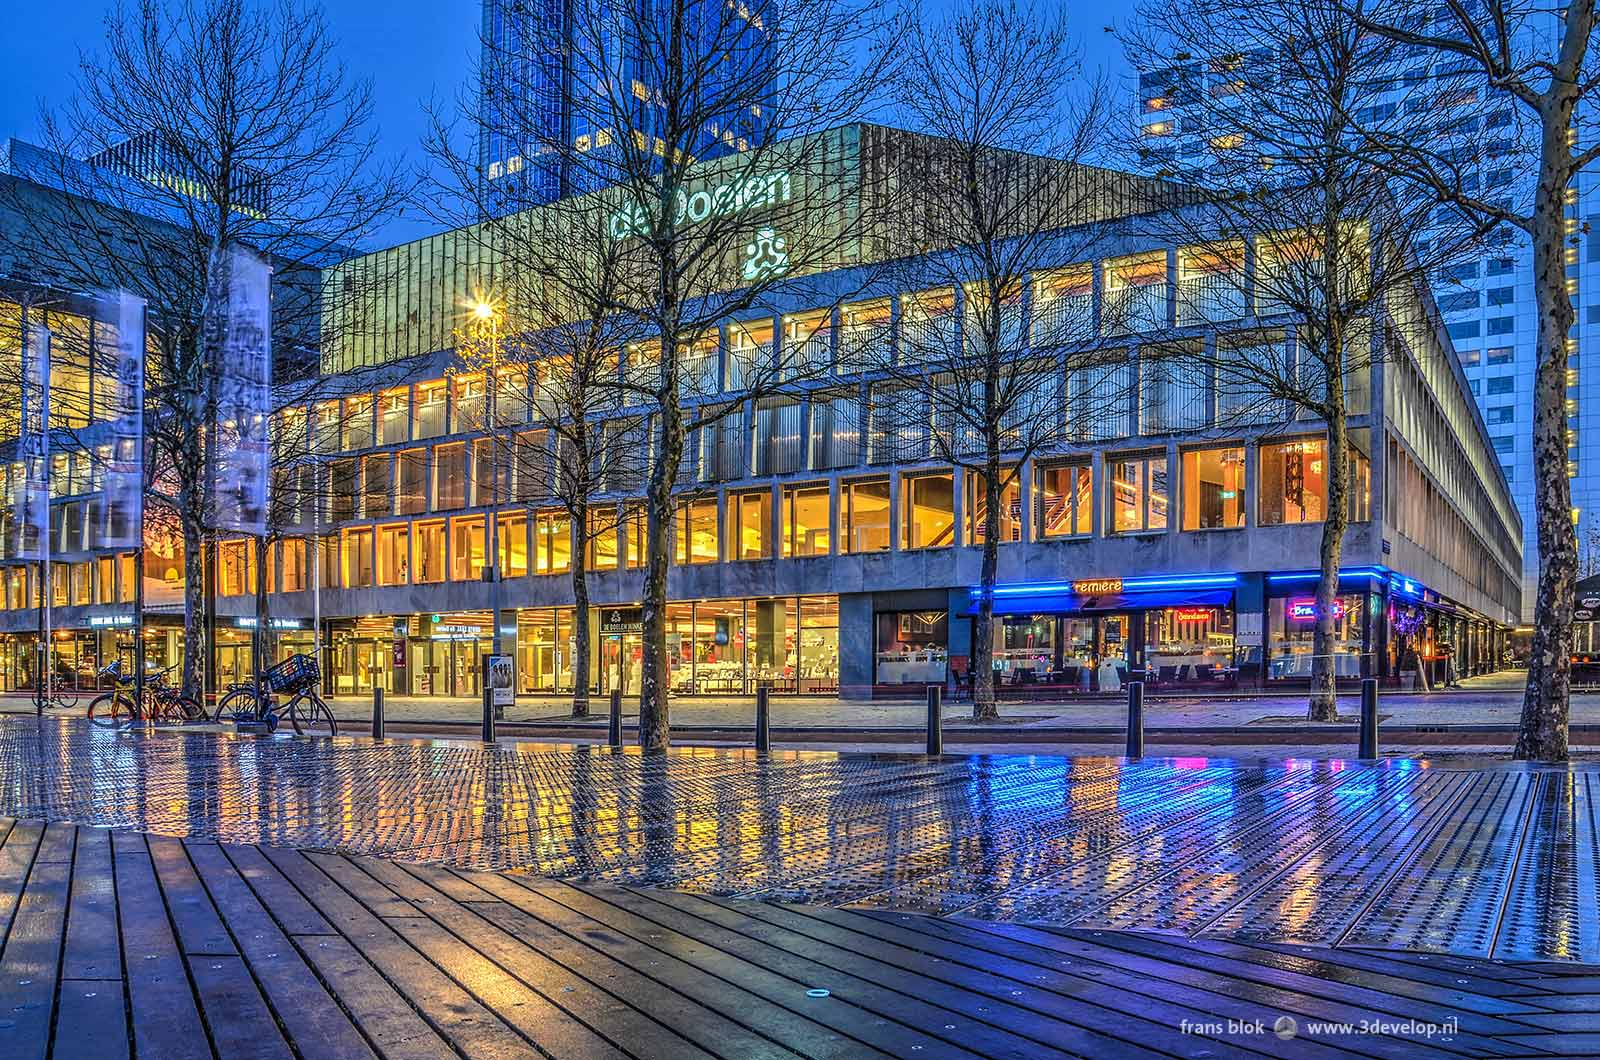 Concert hall De Doelen in Rotterdam by night, reflecting in a wet Schouwburgplein